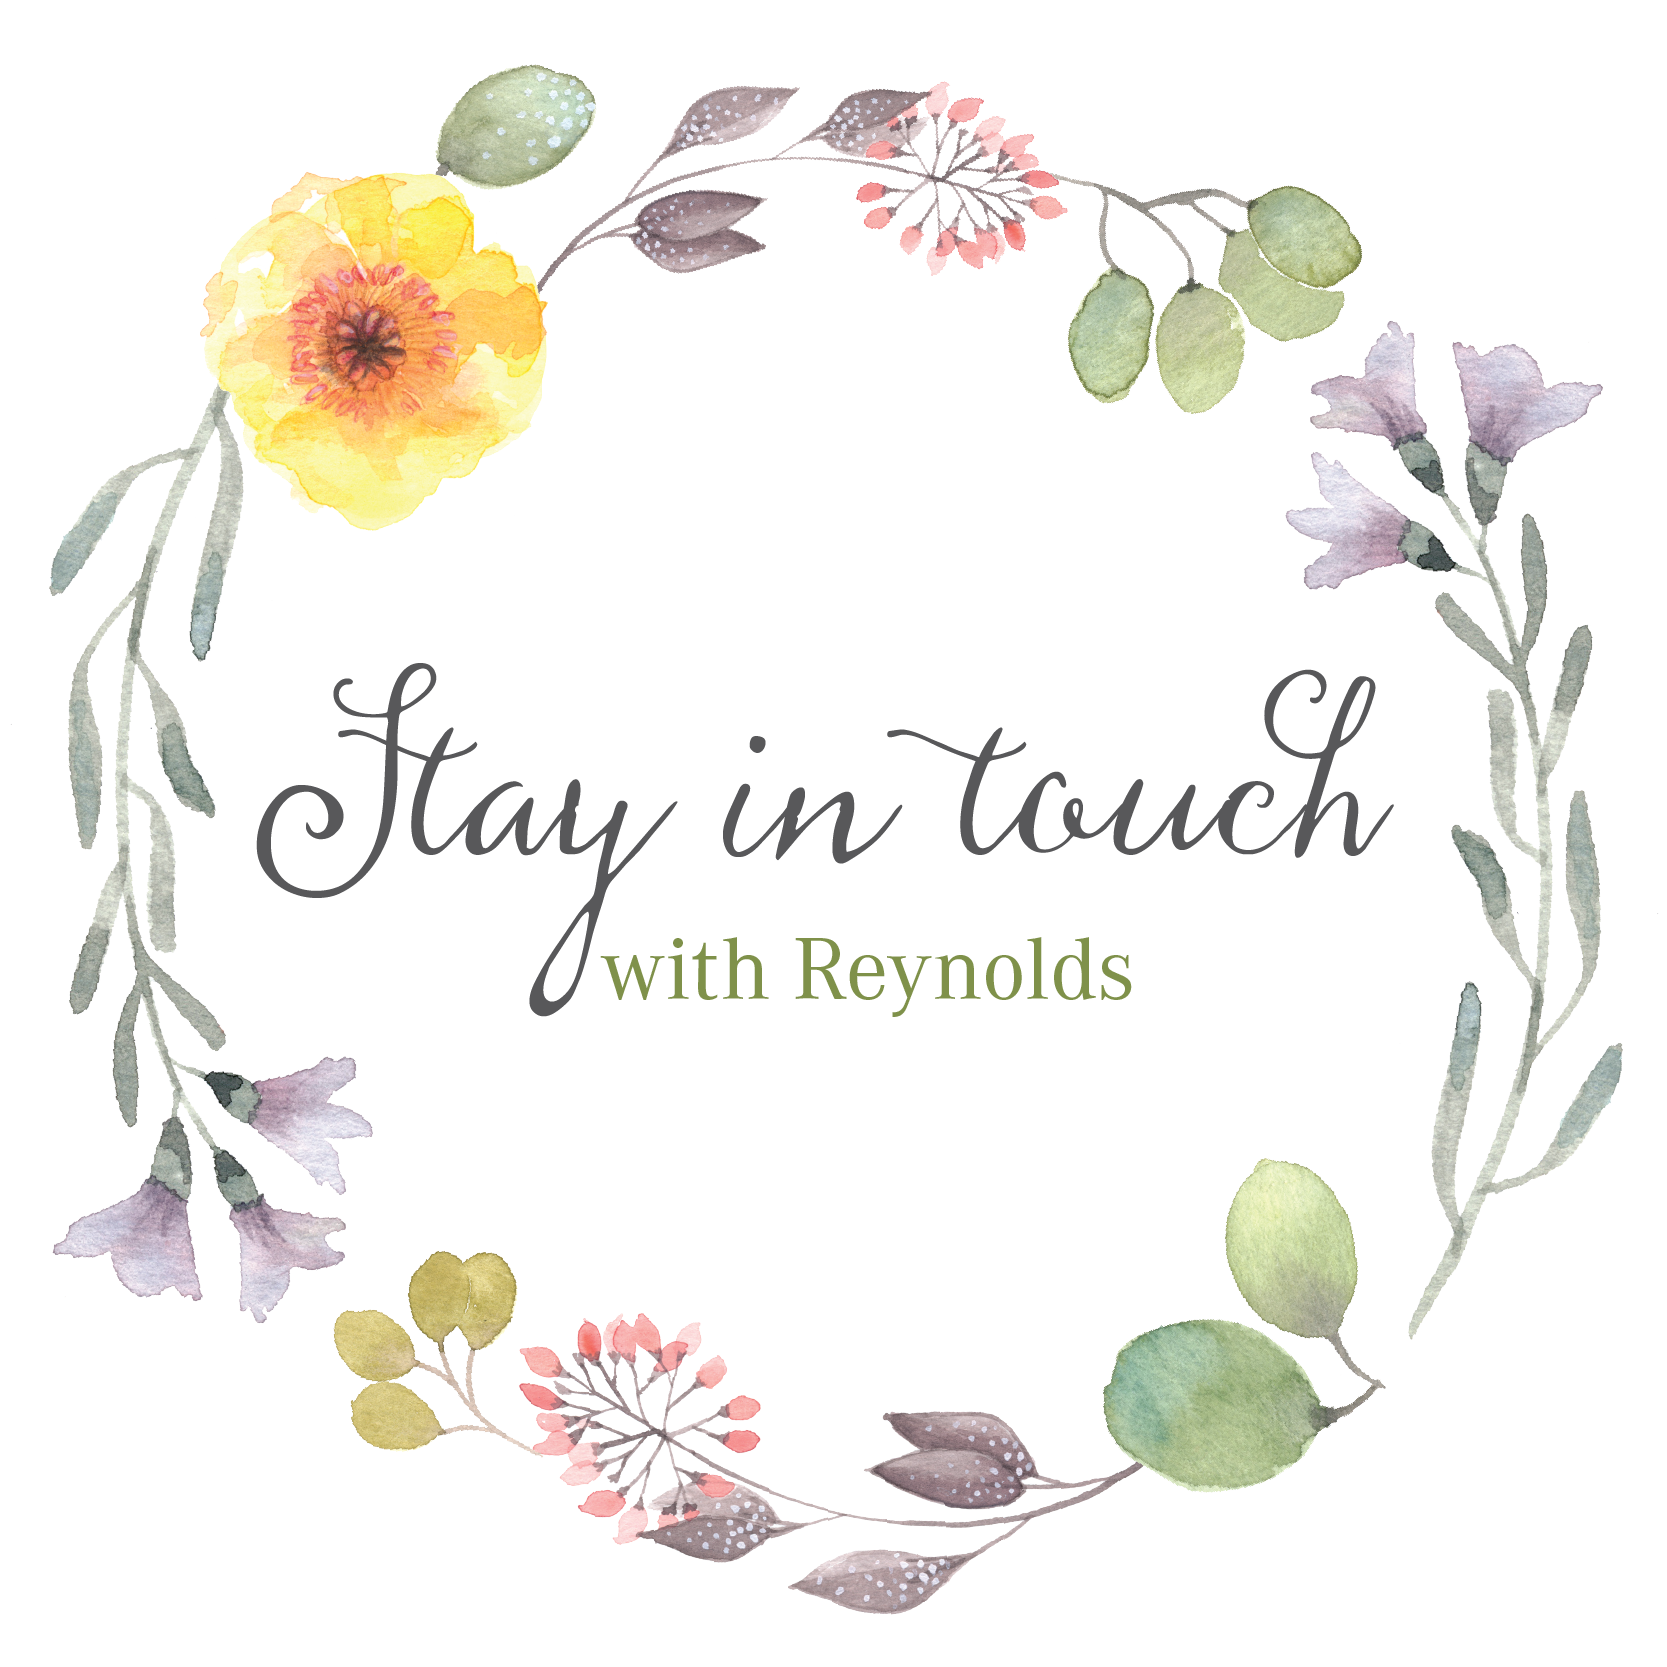 stayintouch-01.png